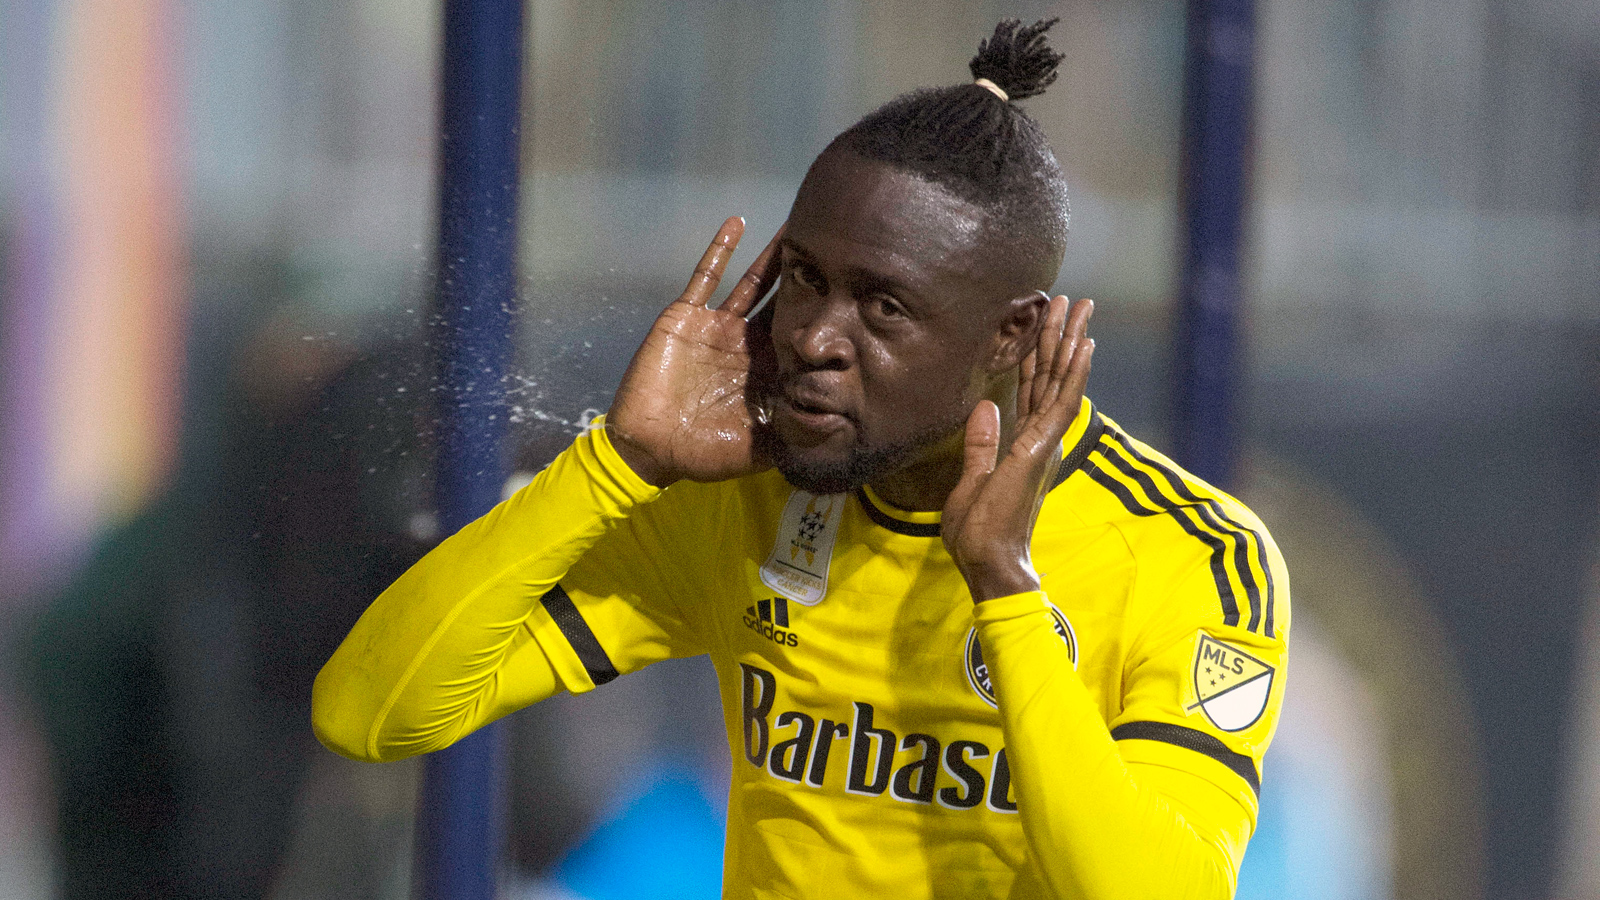 The Kei Kamara trade doesn't make sense for the Crew, Revolution or MLS